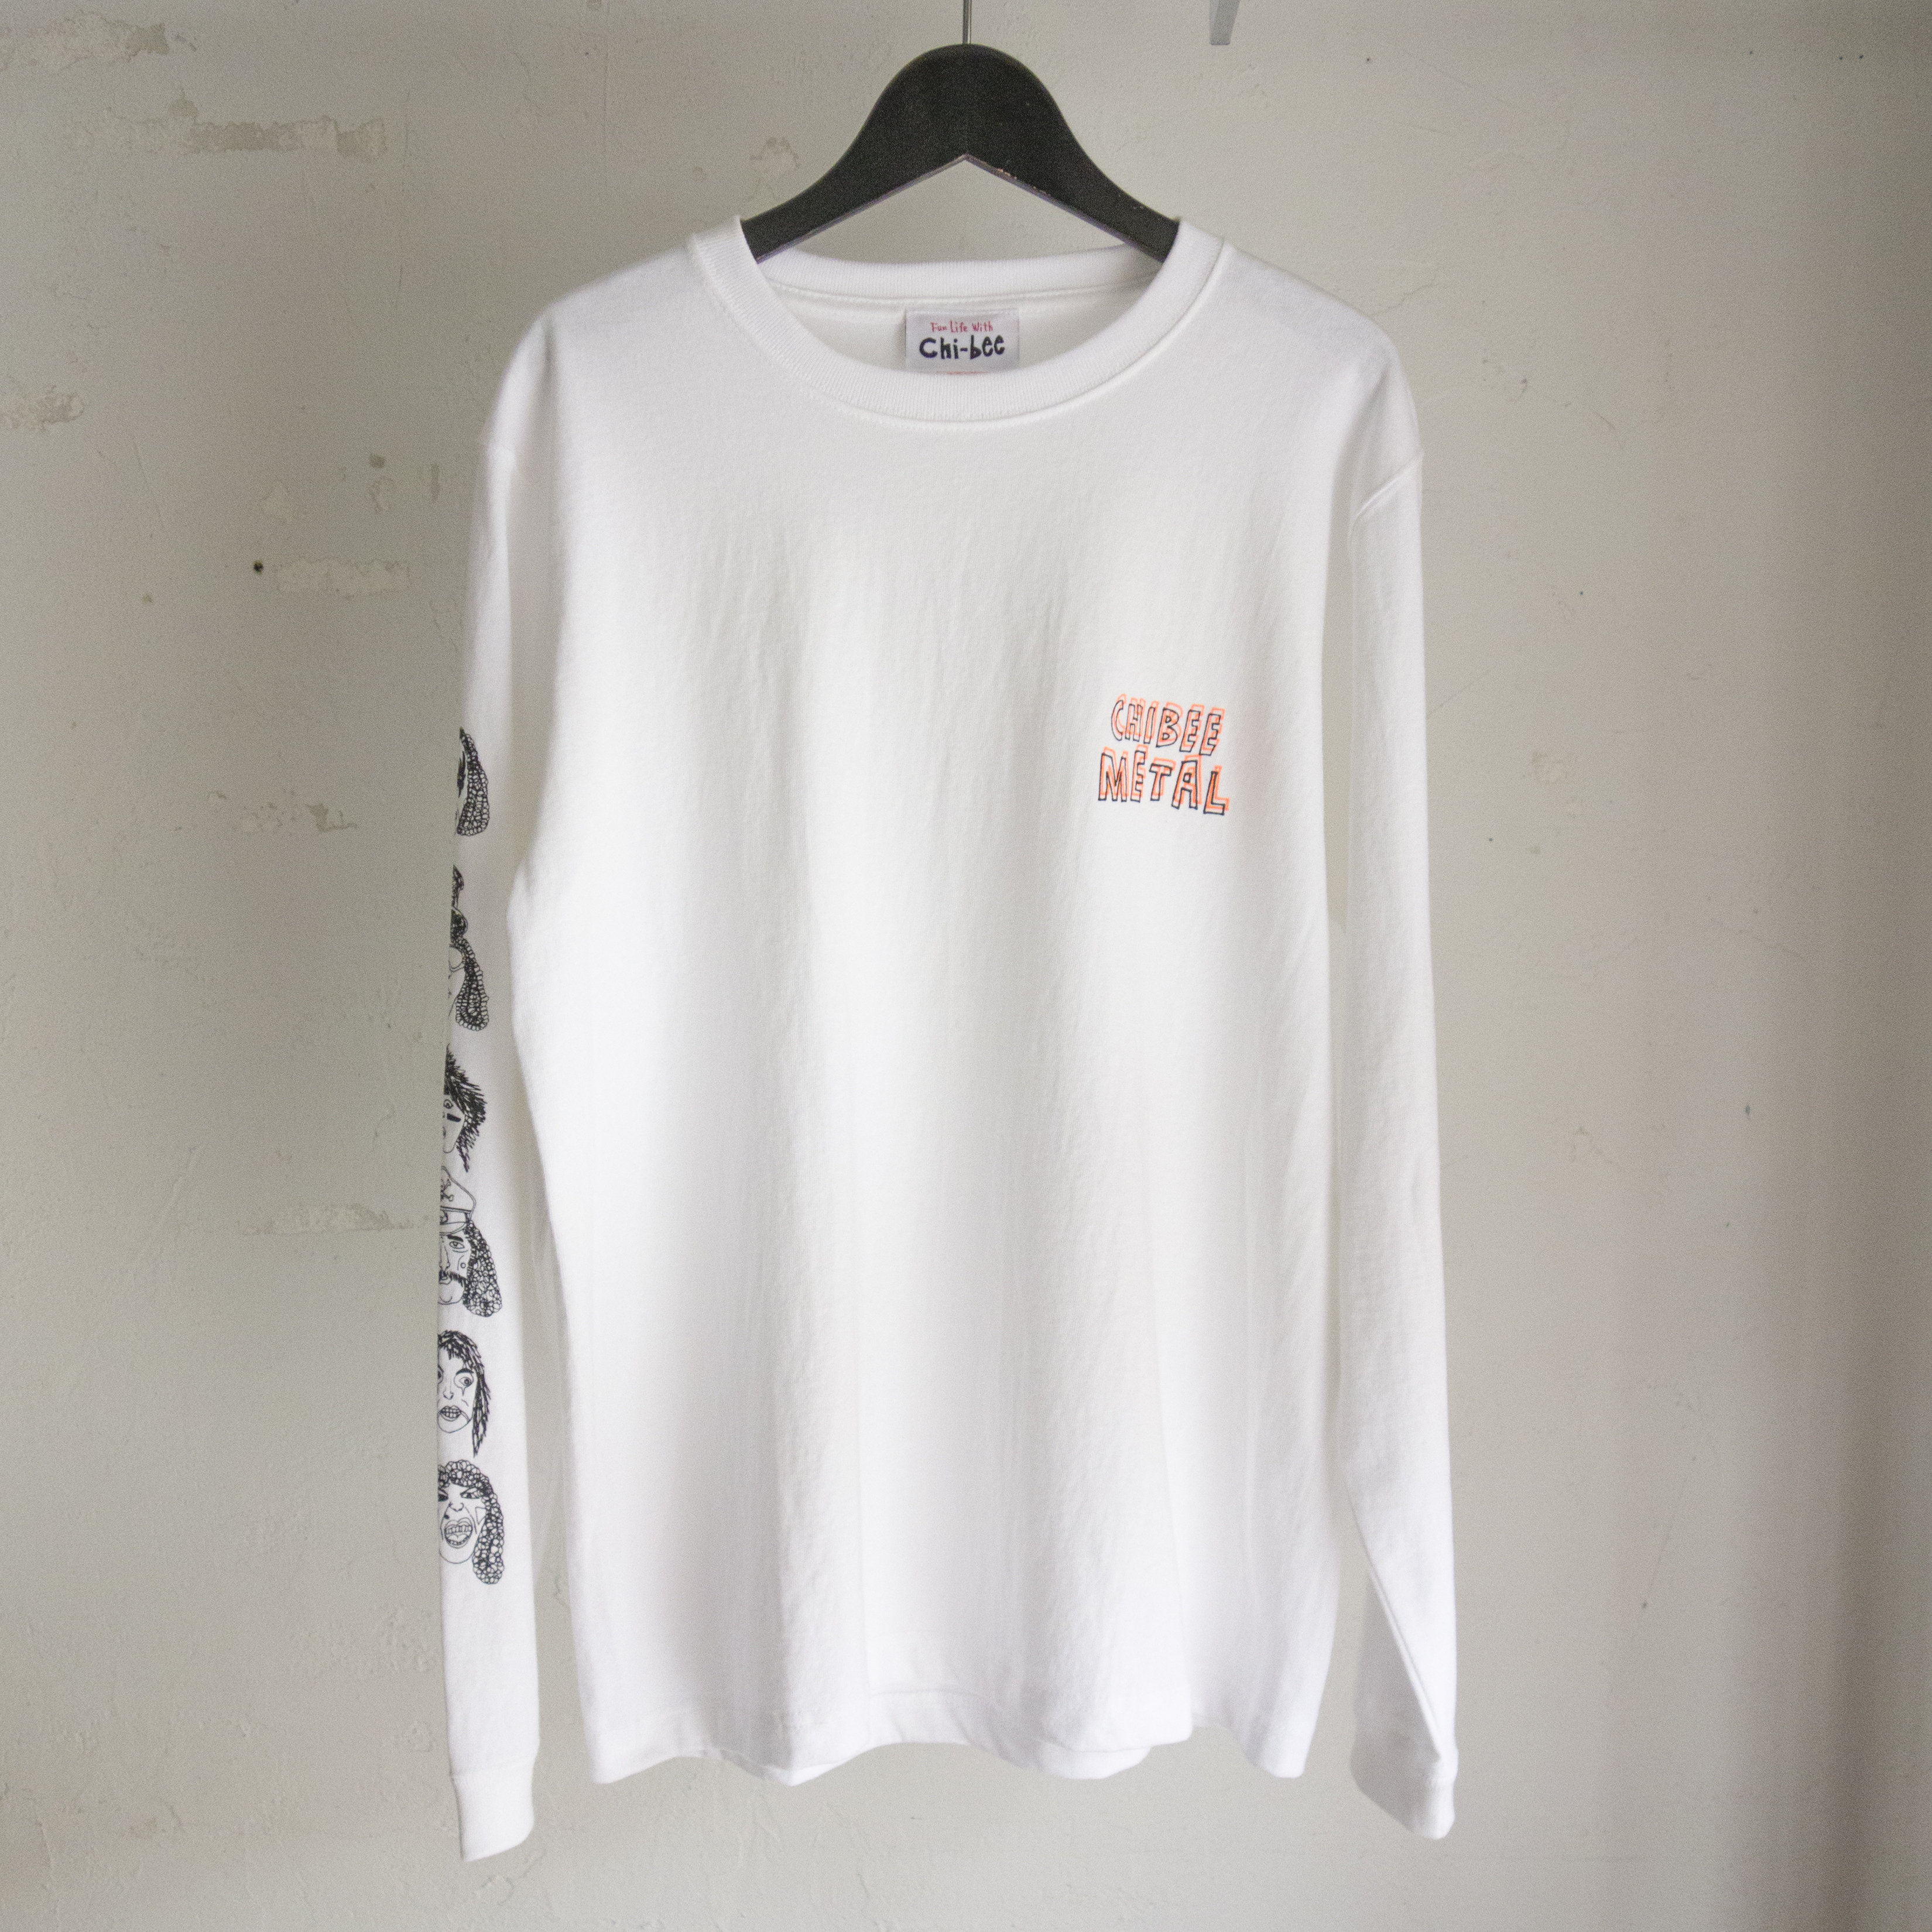 Chi-bee Metal WH long Sleeve